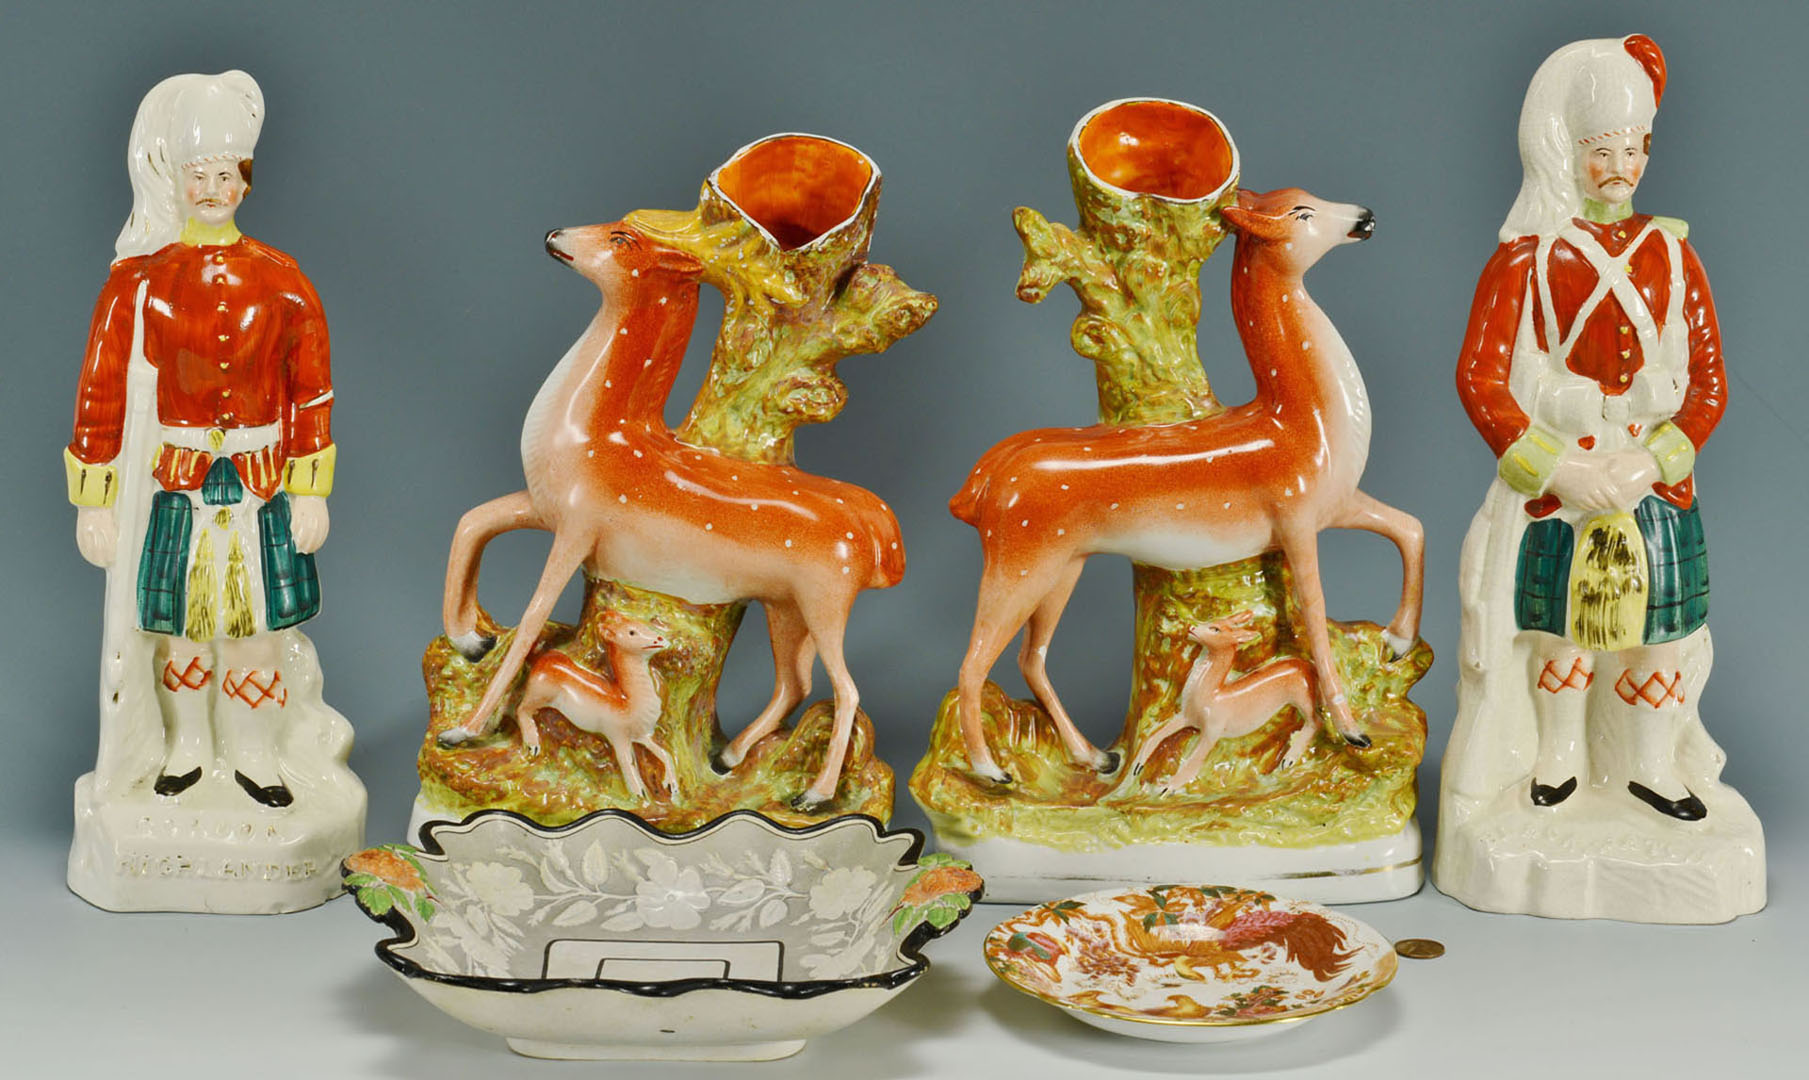 Lot 2872344: Two Pr Staffordshire Figures and Two Ceramic Plate